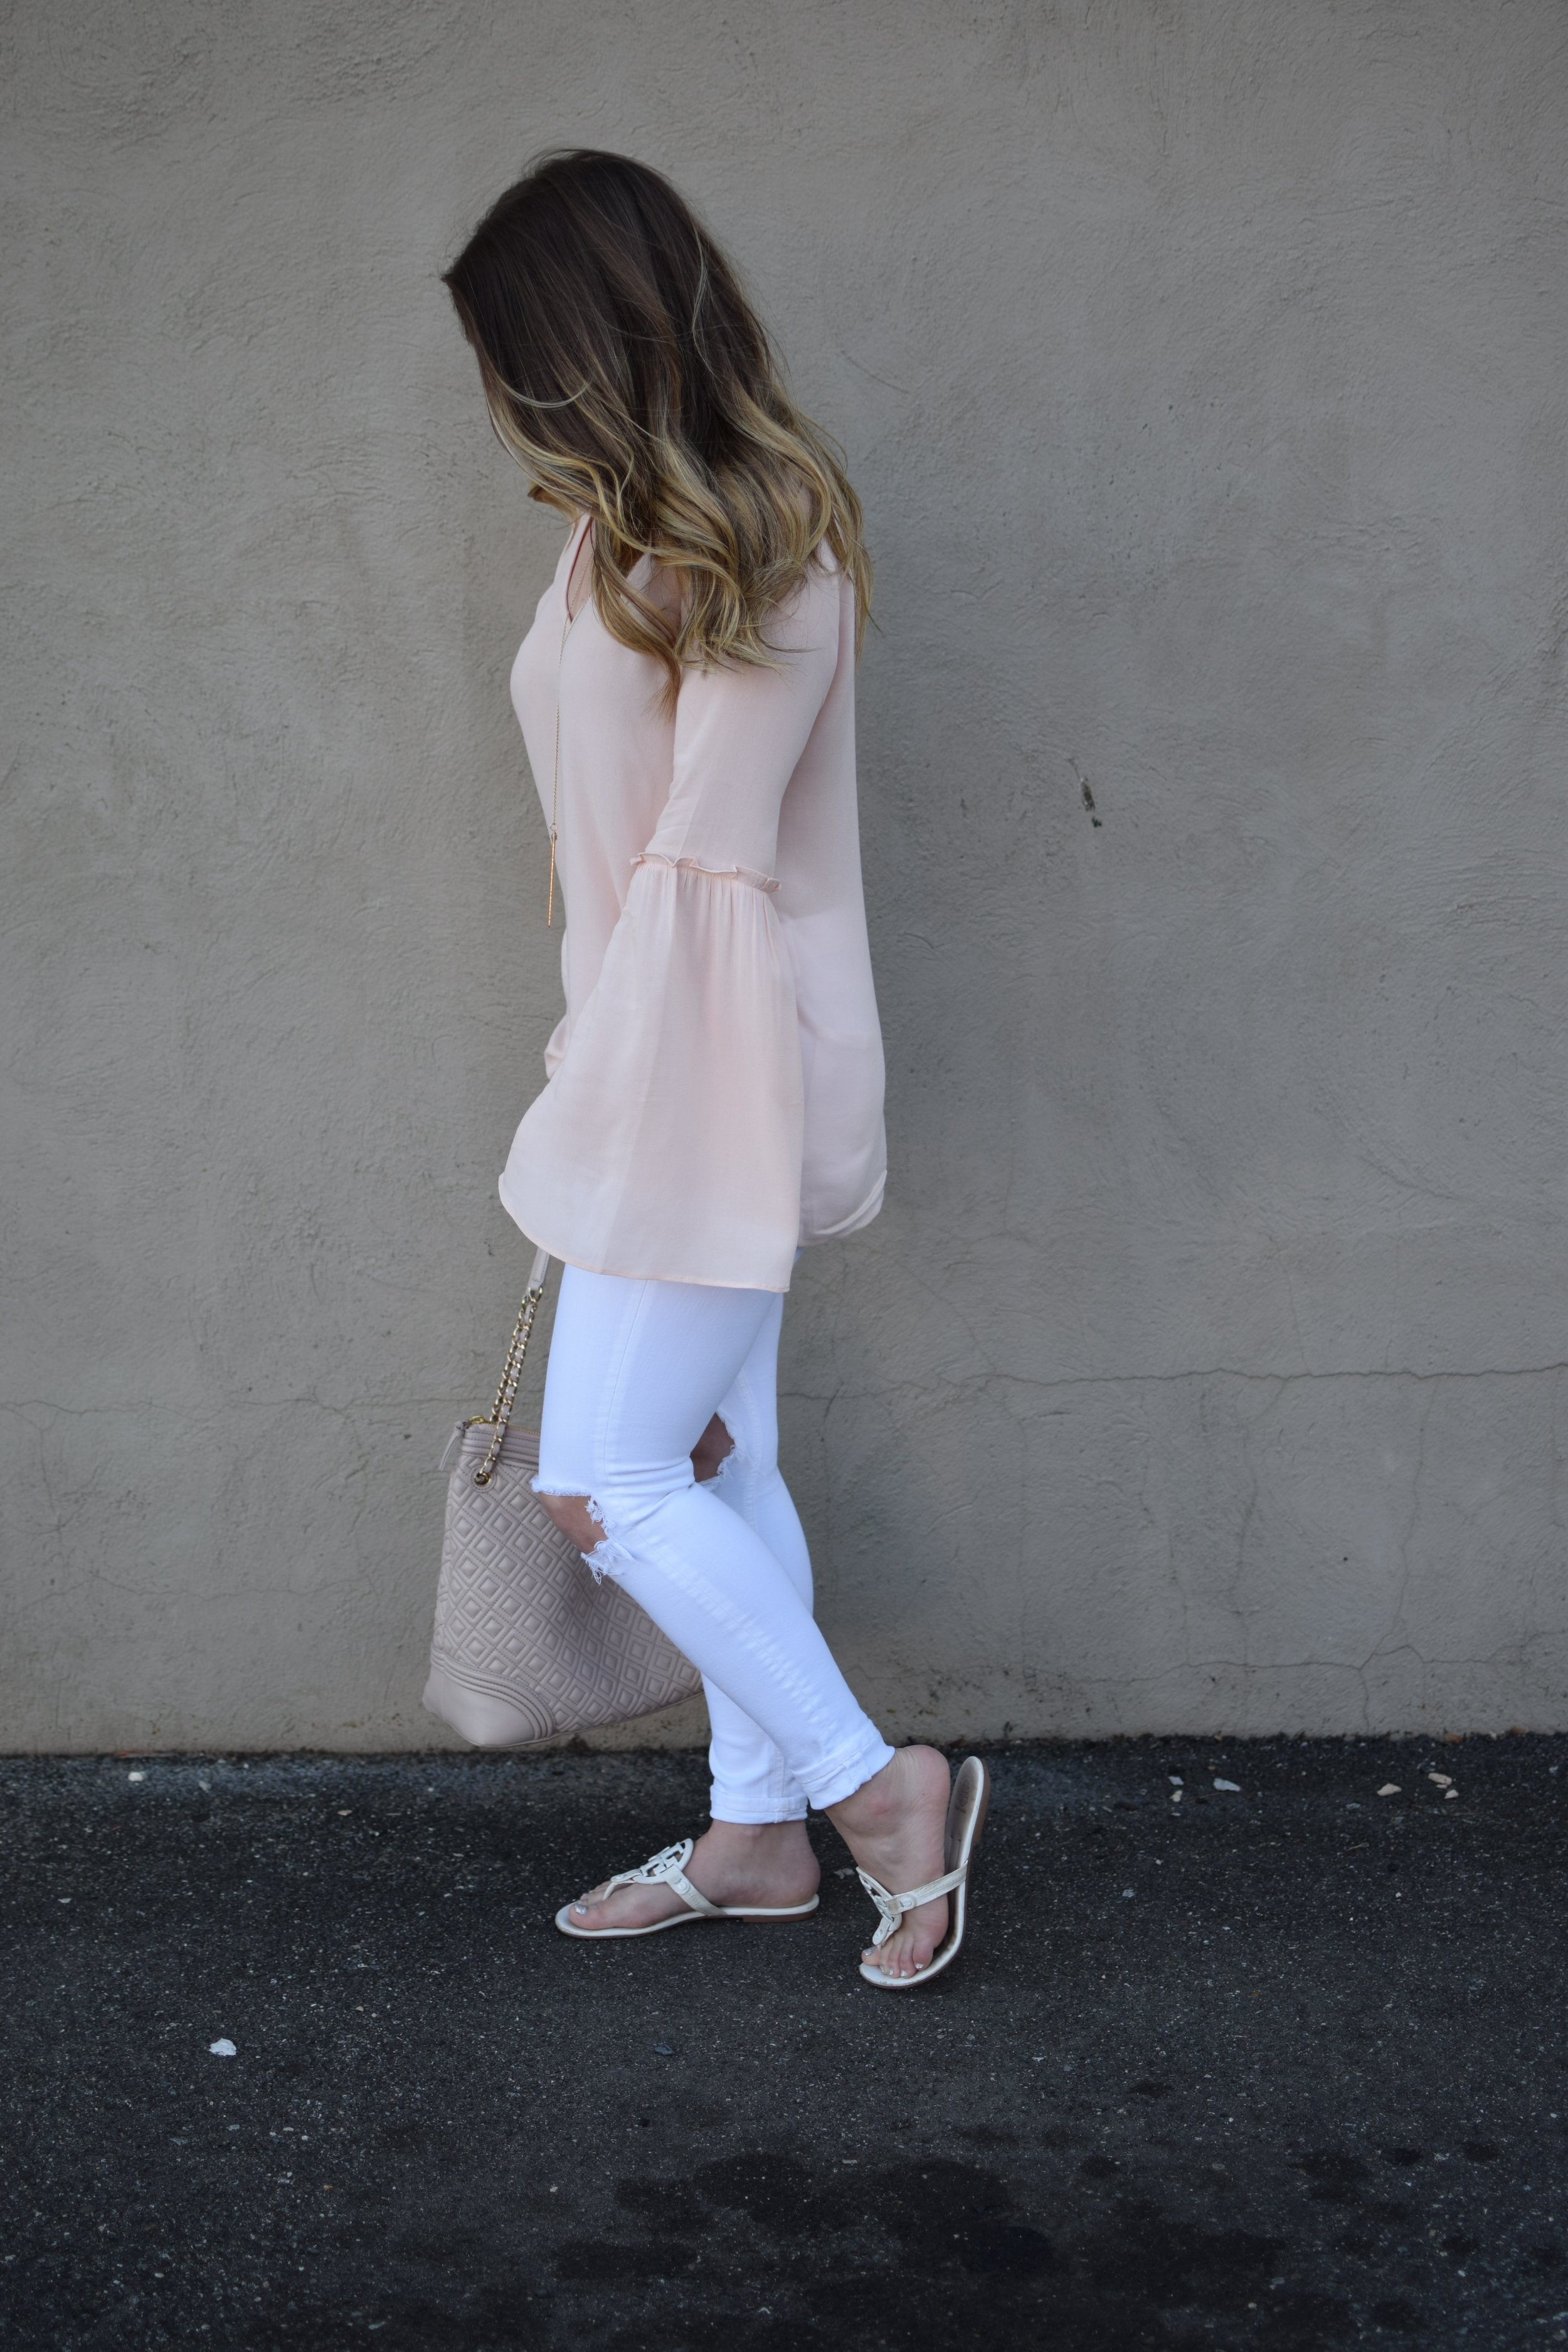 blush bell sleeve top / white distressed denim / tory burch miller sandal / spring outfit idea / balayage hair